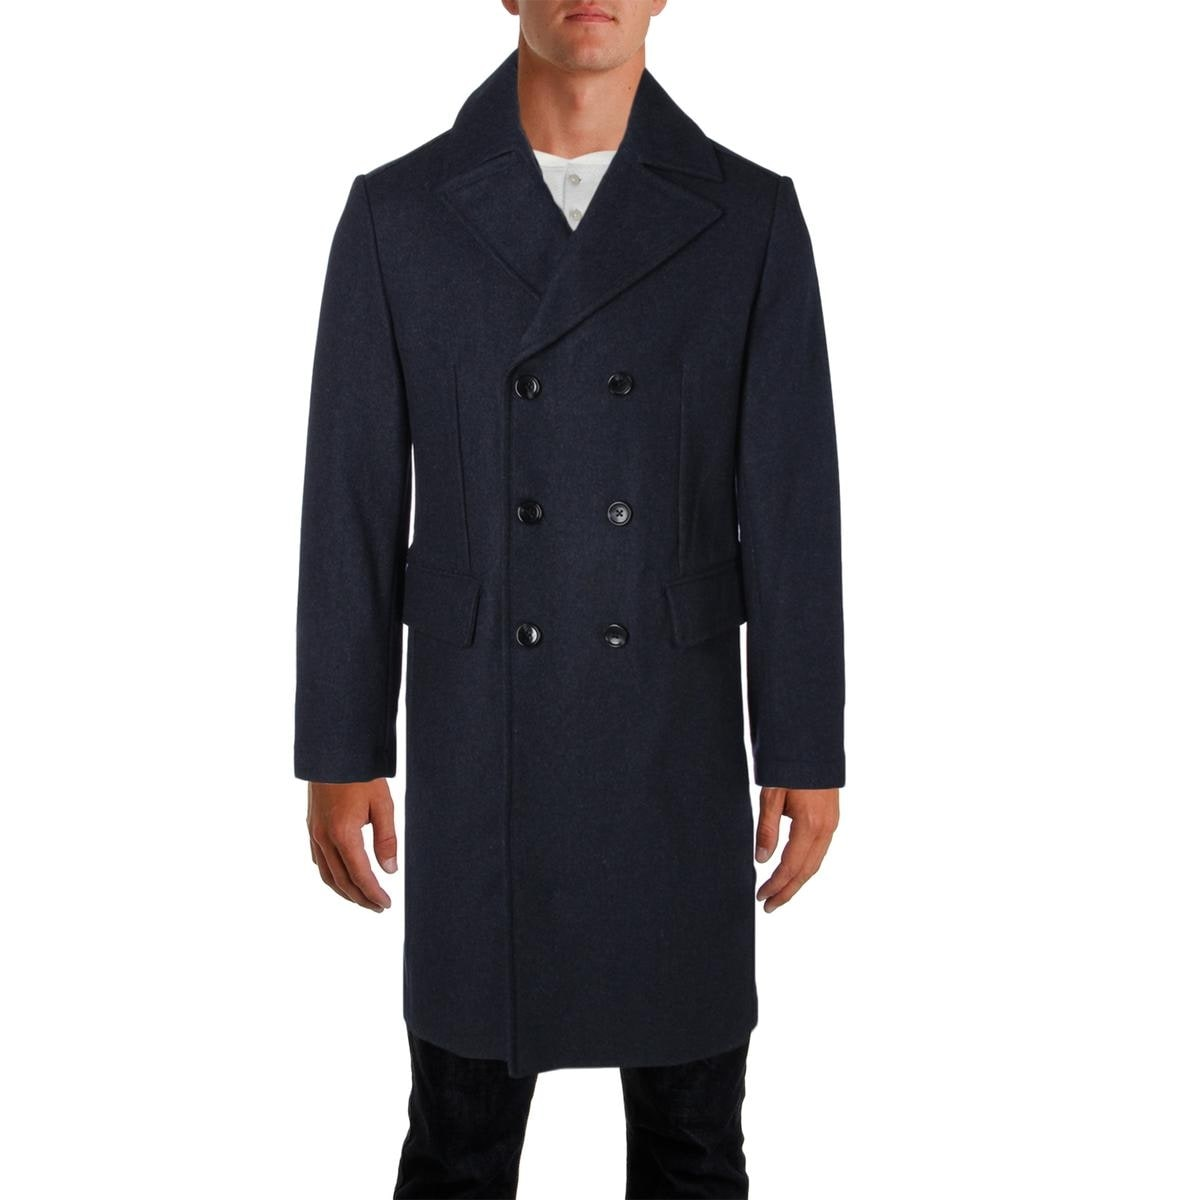 b6150d82959 Shop MICHAEL Michael Kors Mens Pea Coat Wool Double Breasted - Free  Shipping Today - Overstock - 18390386